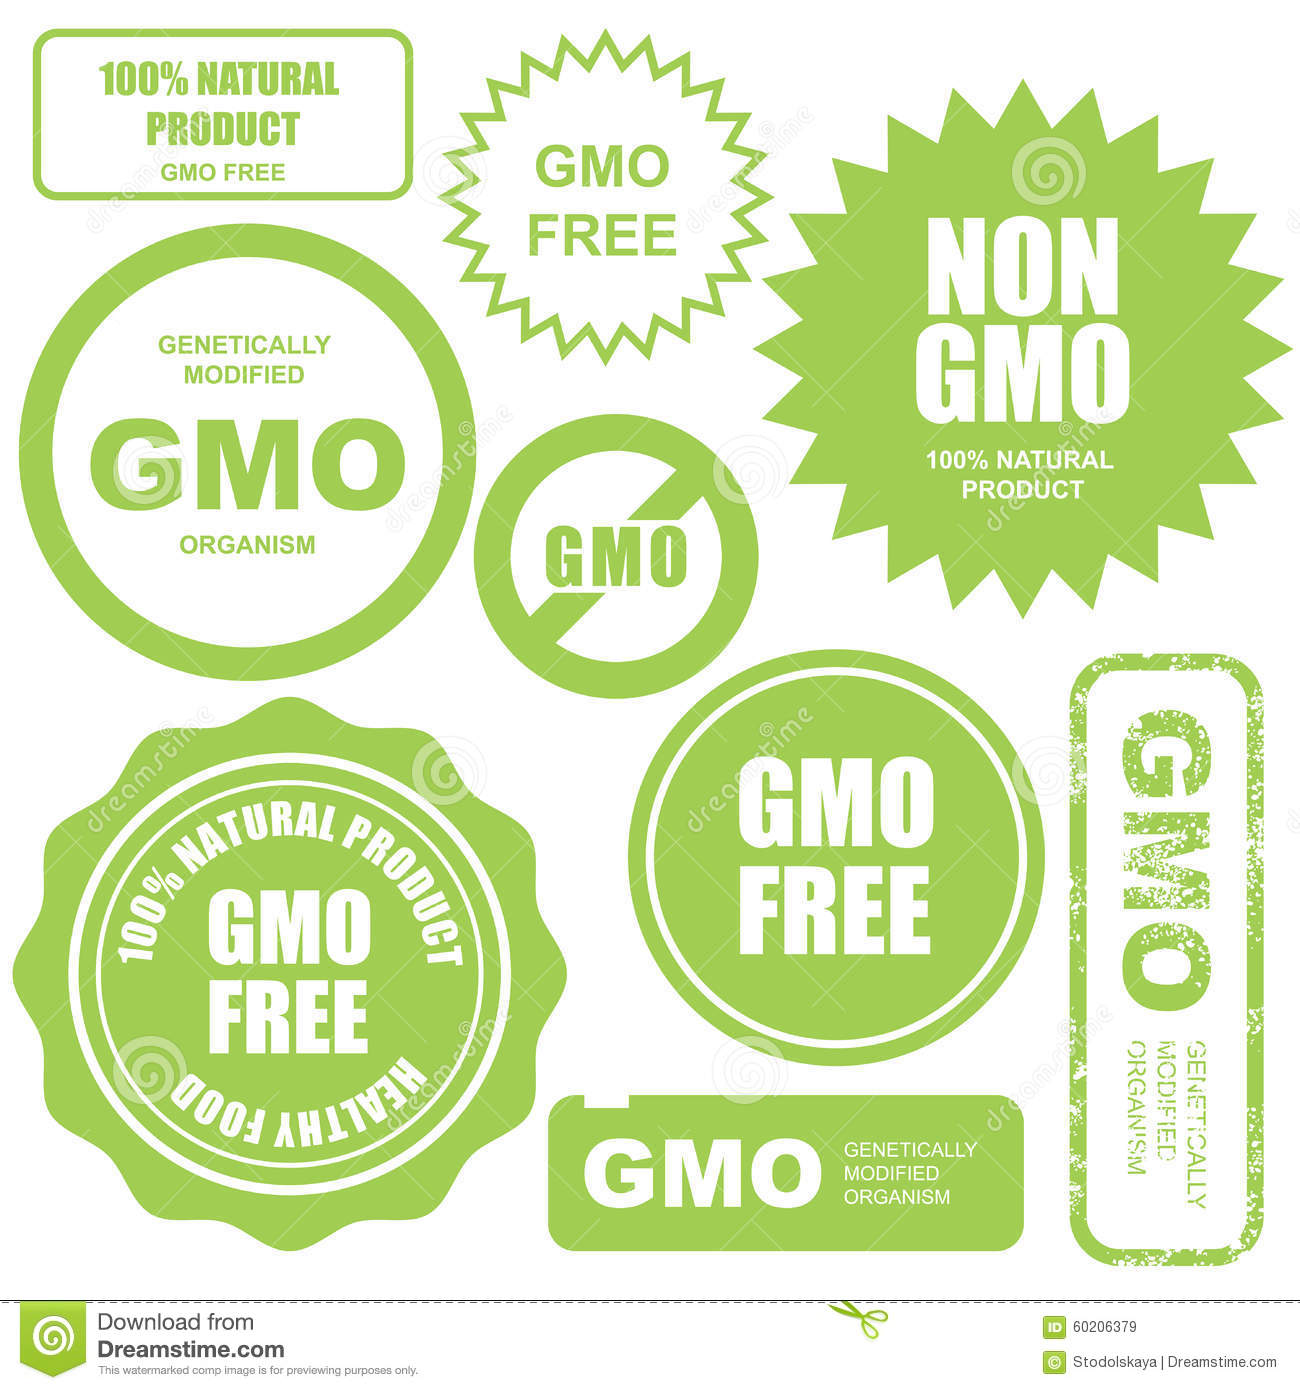 how to read gmo labels